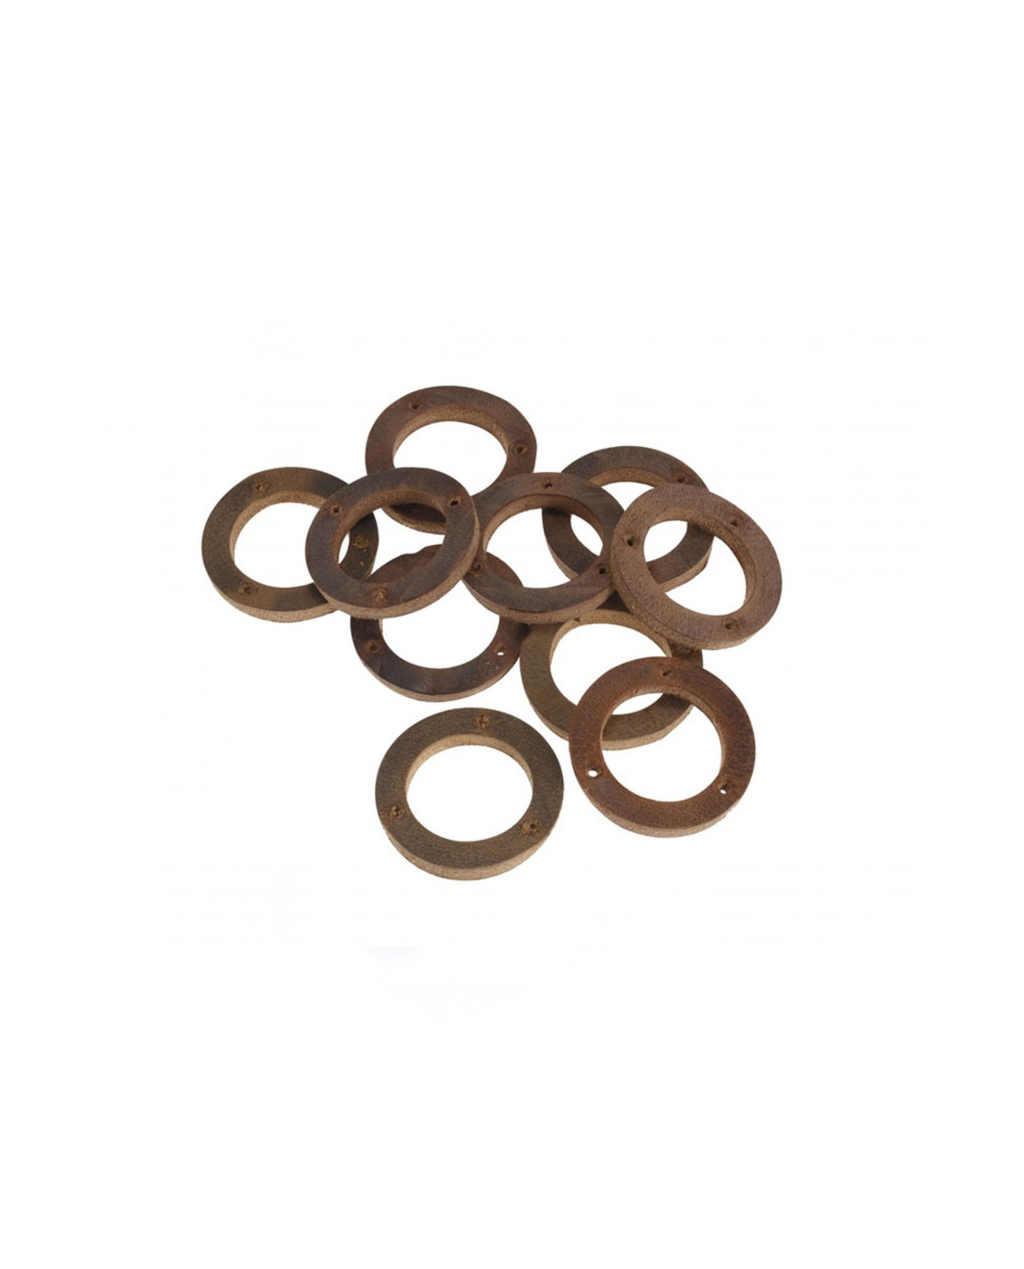 Brooks Aged Leather Ring for Handlebar Grip (10 pieces) - BYB 334